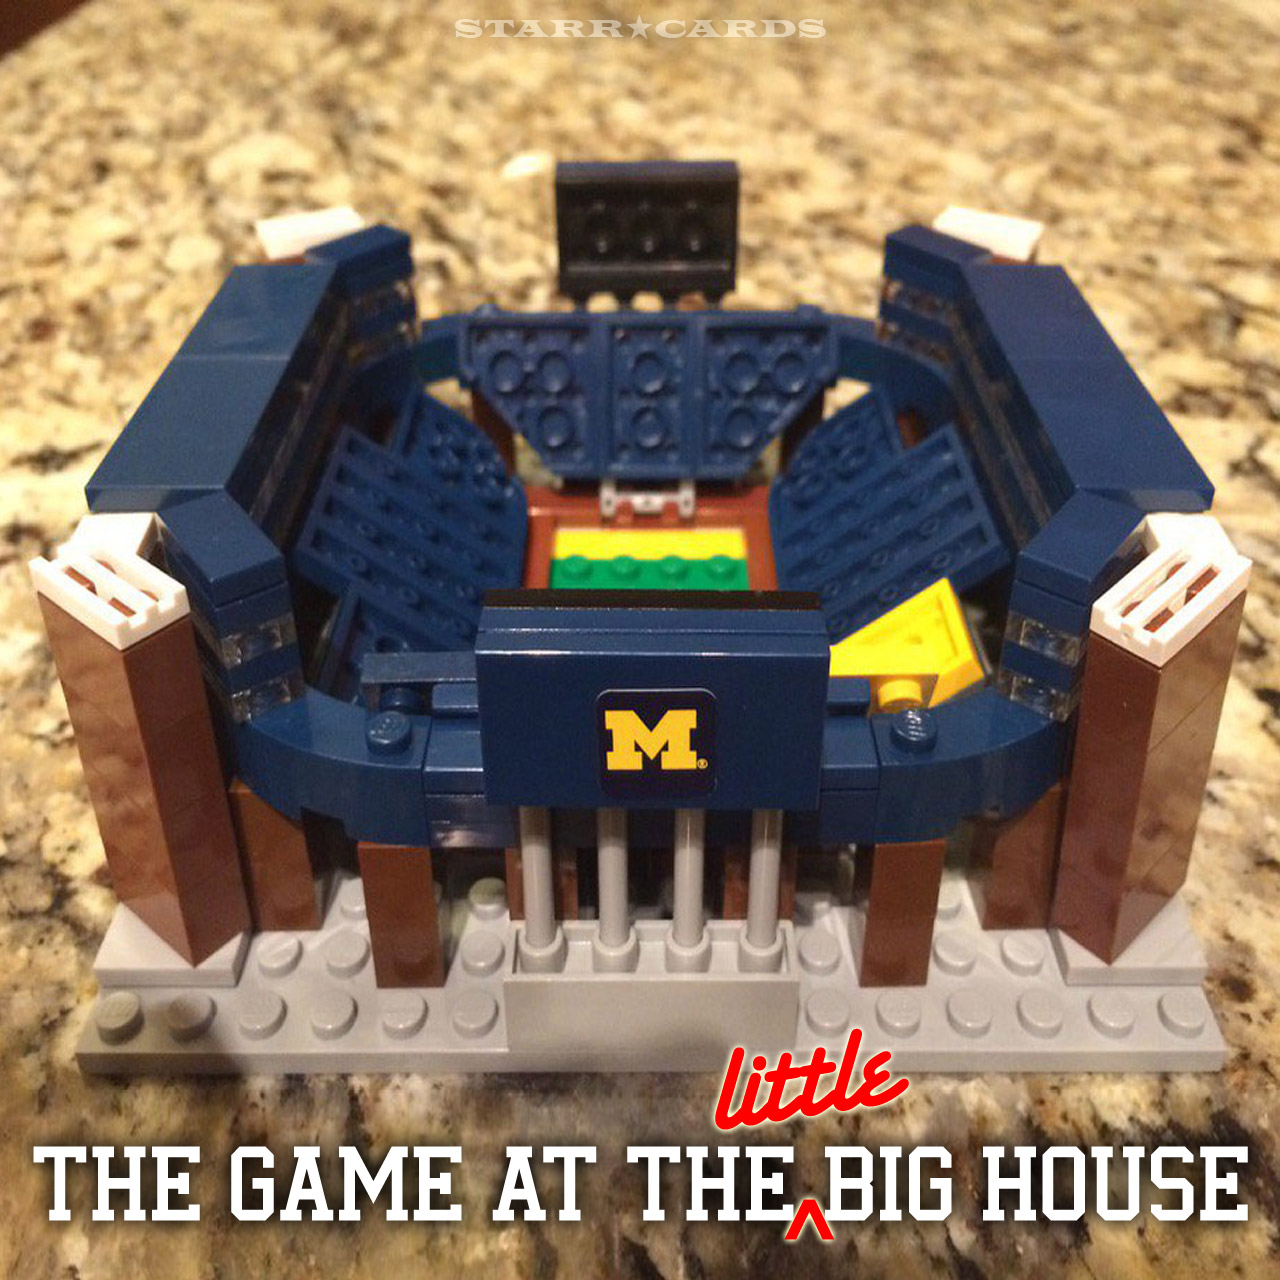 Ohio State vs Michigan: The Game at the Big House